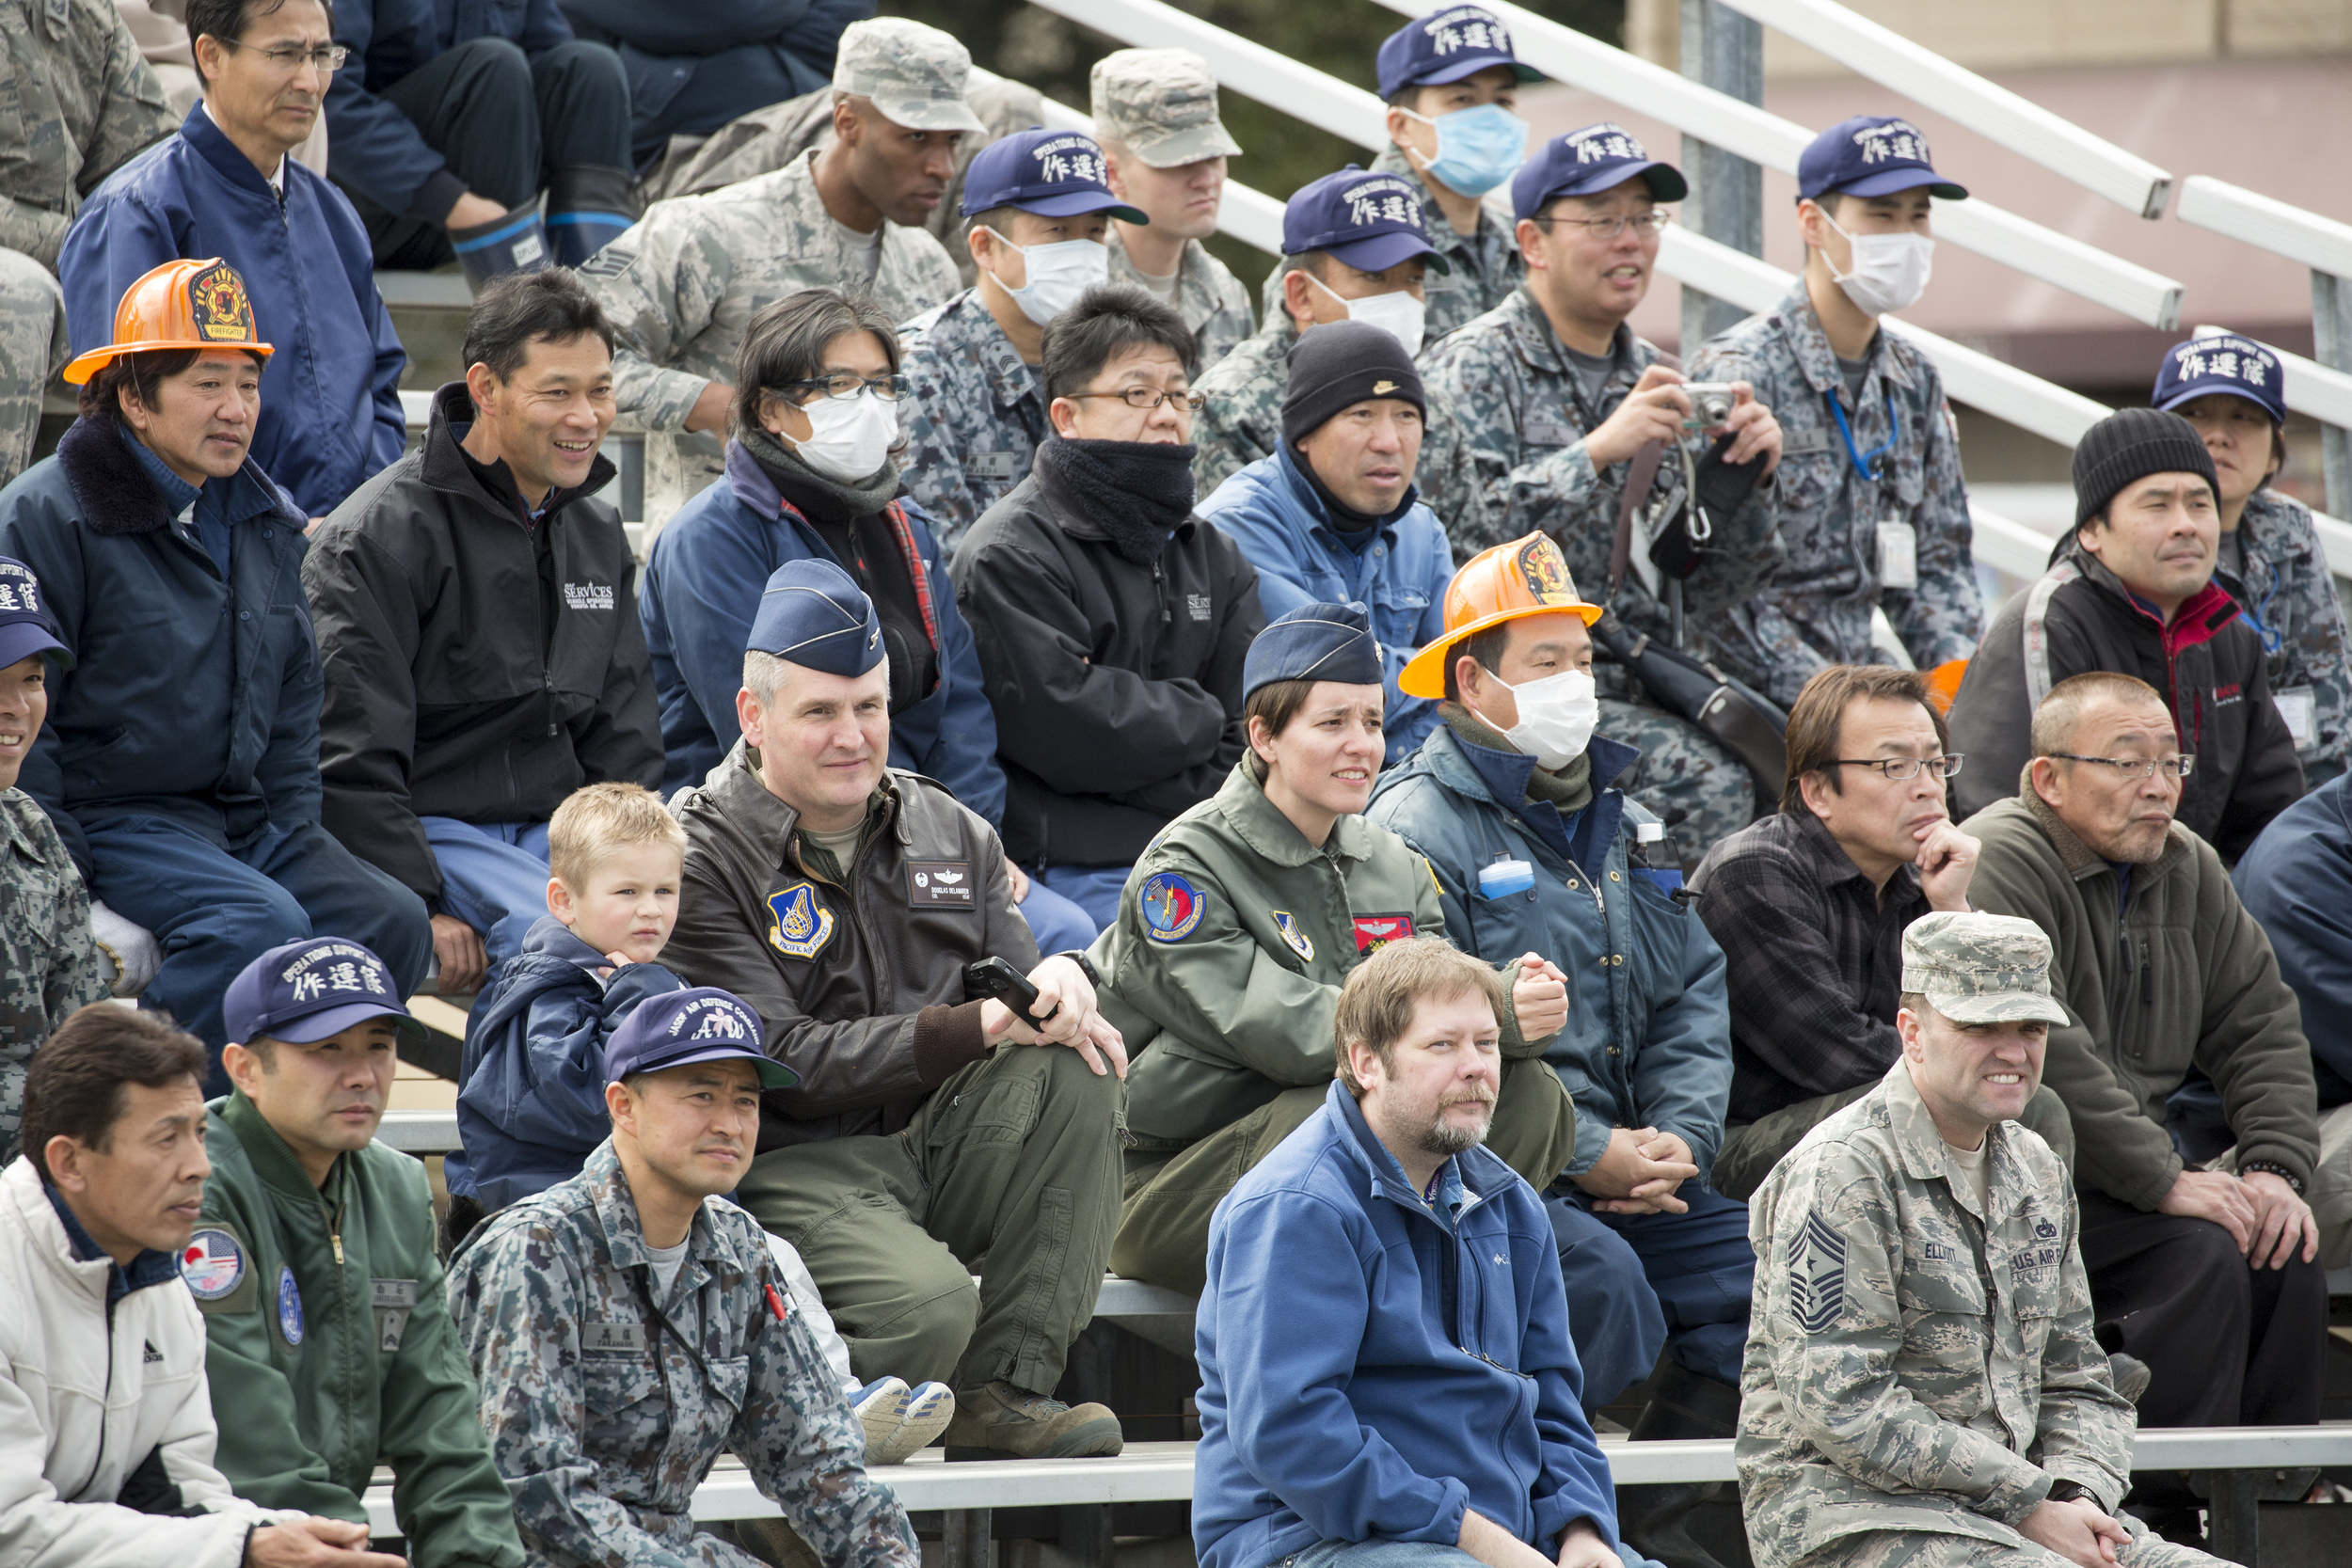 """Audience members watch the traffic safety demonstration by stunt project team """"Super Drivers"""" during the safety festival at Yokota Air Base, Japan, March 6, 2015. The event demonstrated hairy moments in car accidents. (U.S. Air Force photo by Osakabe Yasuo/Released)"""